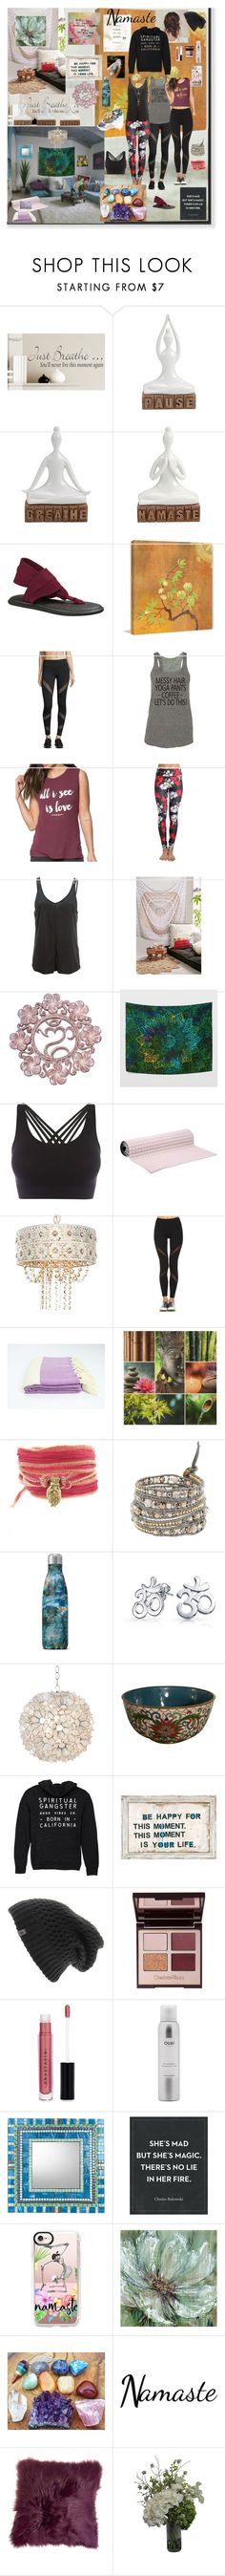 """Dream Yoga Studio, Namaste"" by tina-meri ❤ liked on Polyvore featuring sanuk, Marmont Hill, Alo Yoga, Spiritual Gangster, NOVICA, Pepper & Mayne, No Ka'Oi, Catherine Michiels, Chan Luu and S'well"